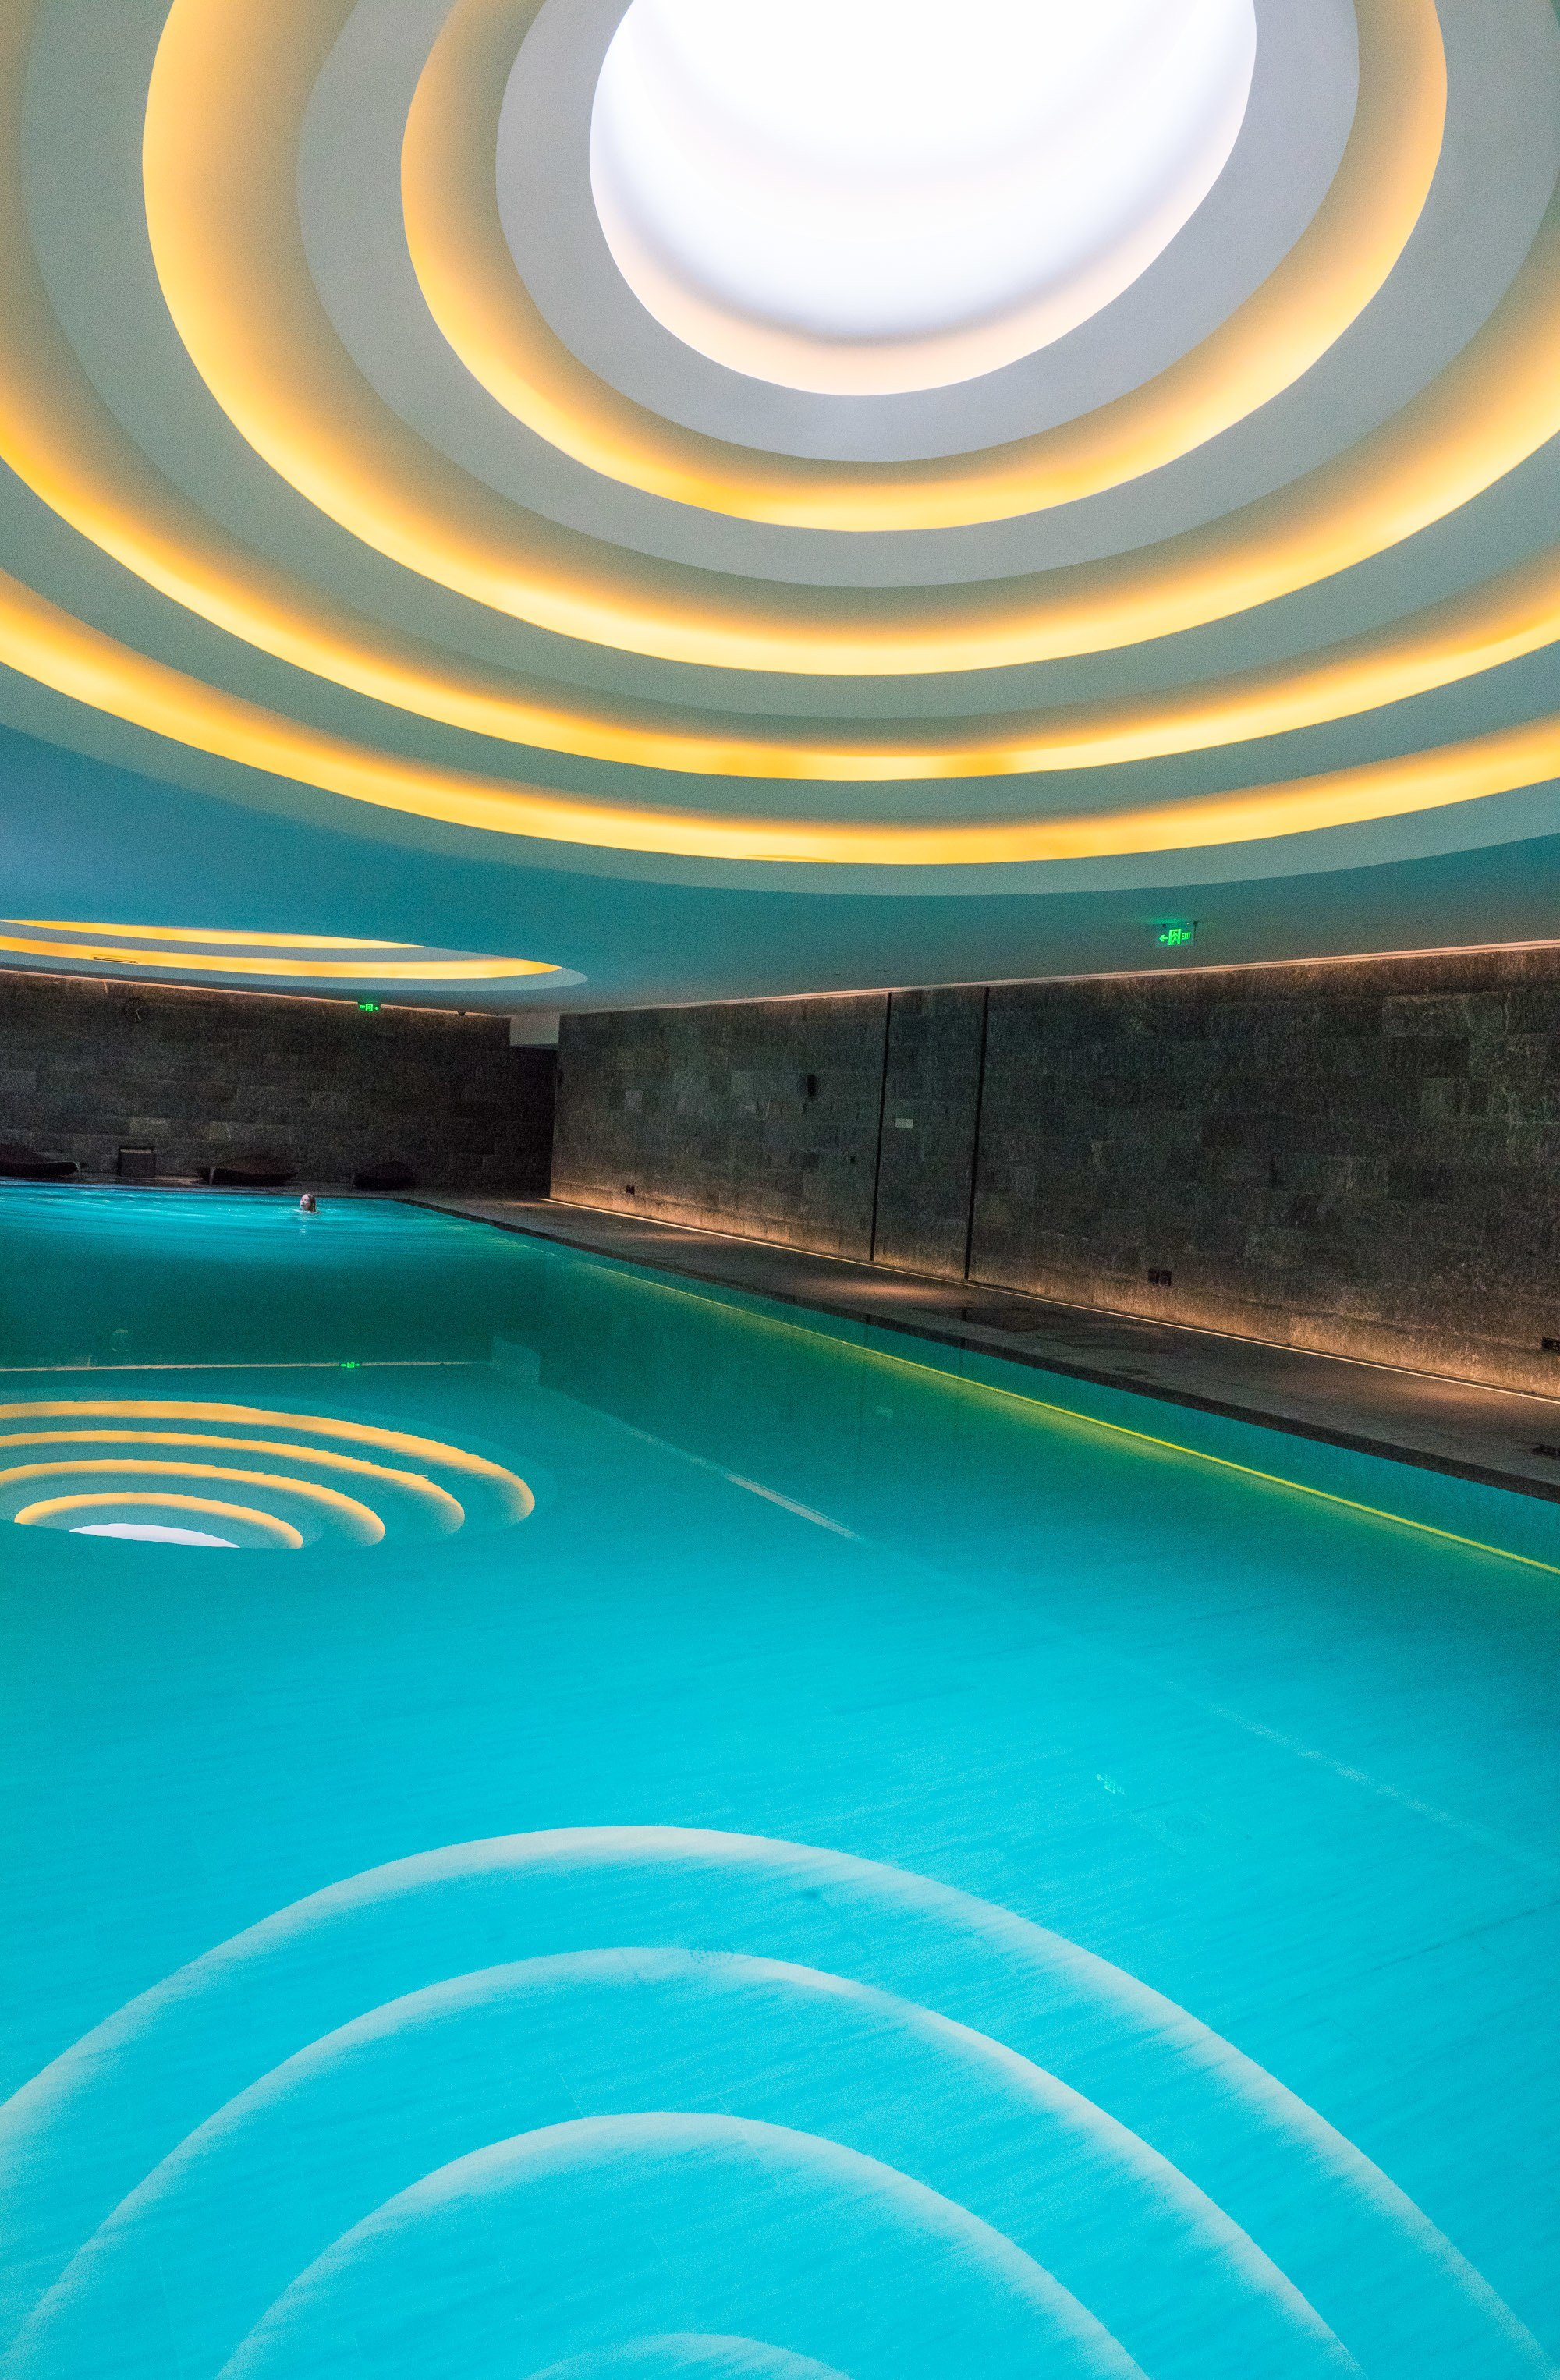 The Temple House has one of the best indoor pools in China.